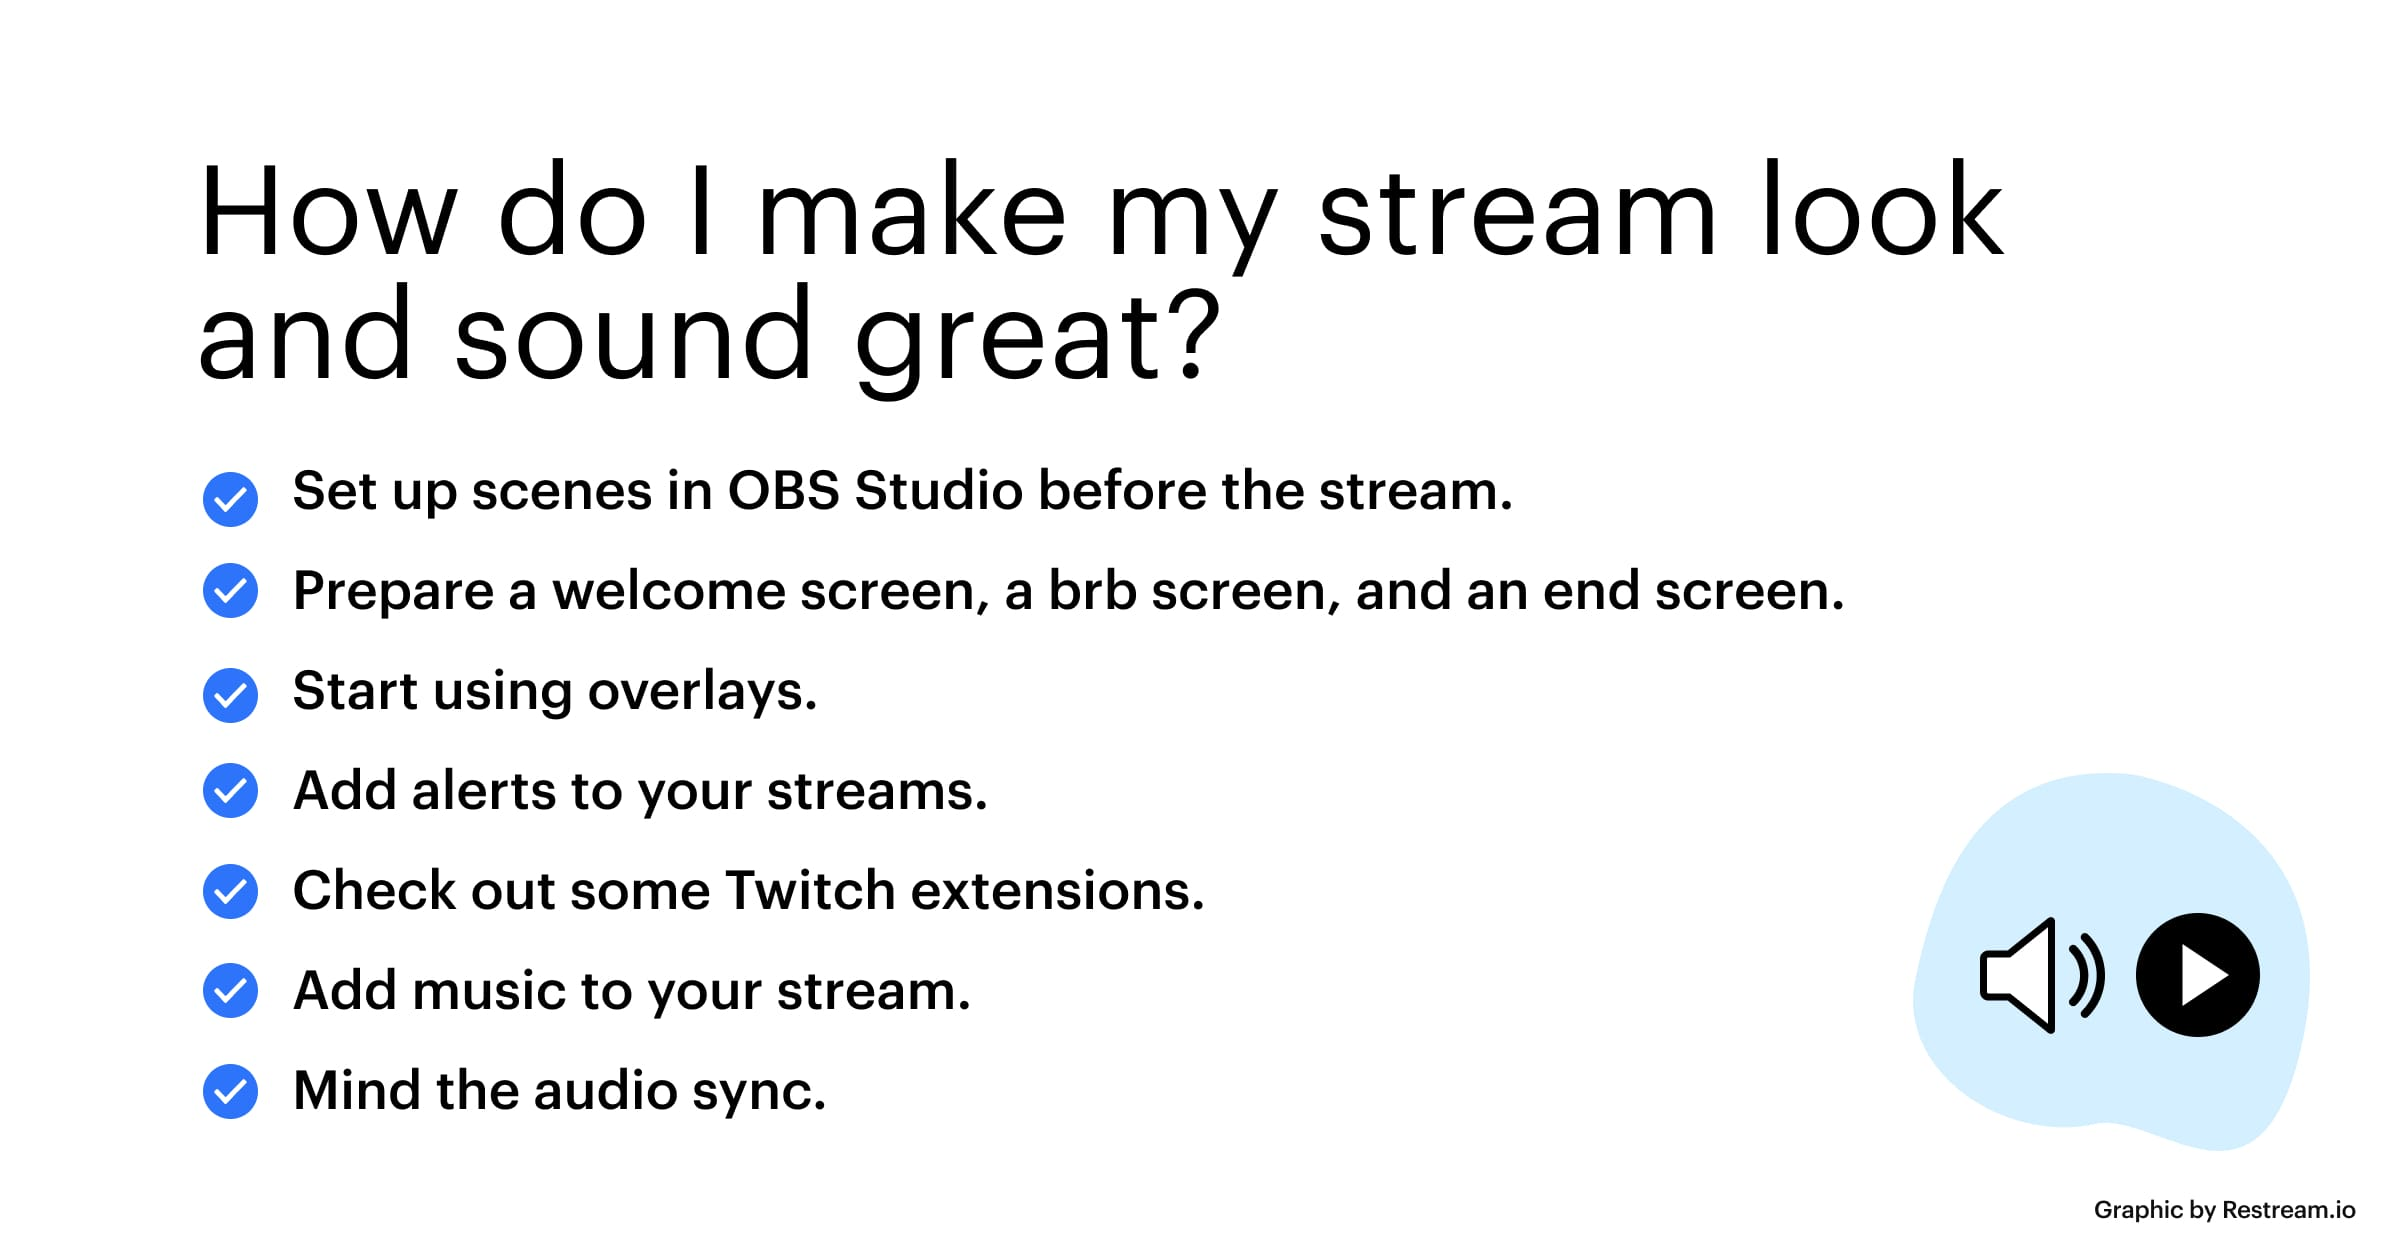 Checklist – How do I make my stream look and sound great?